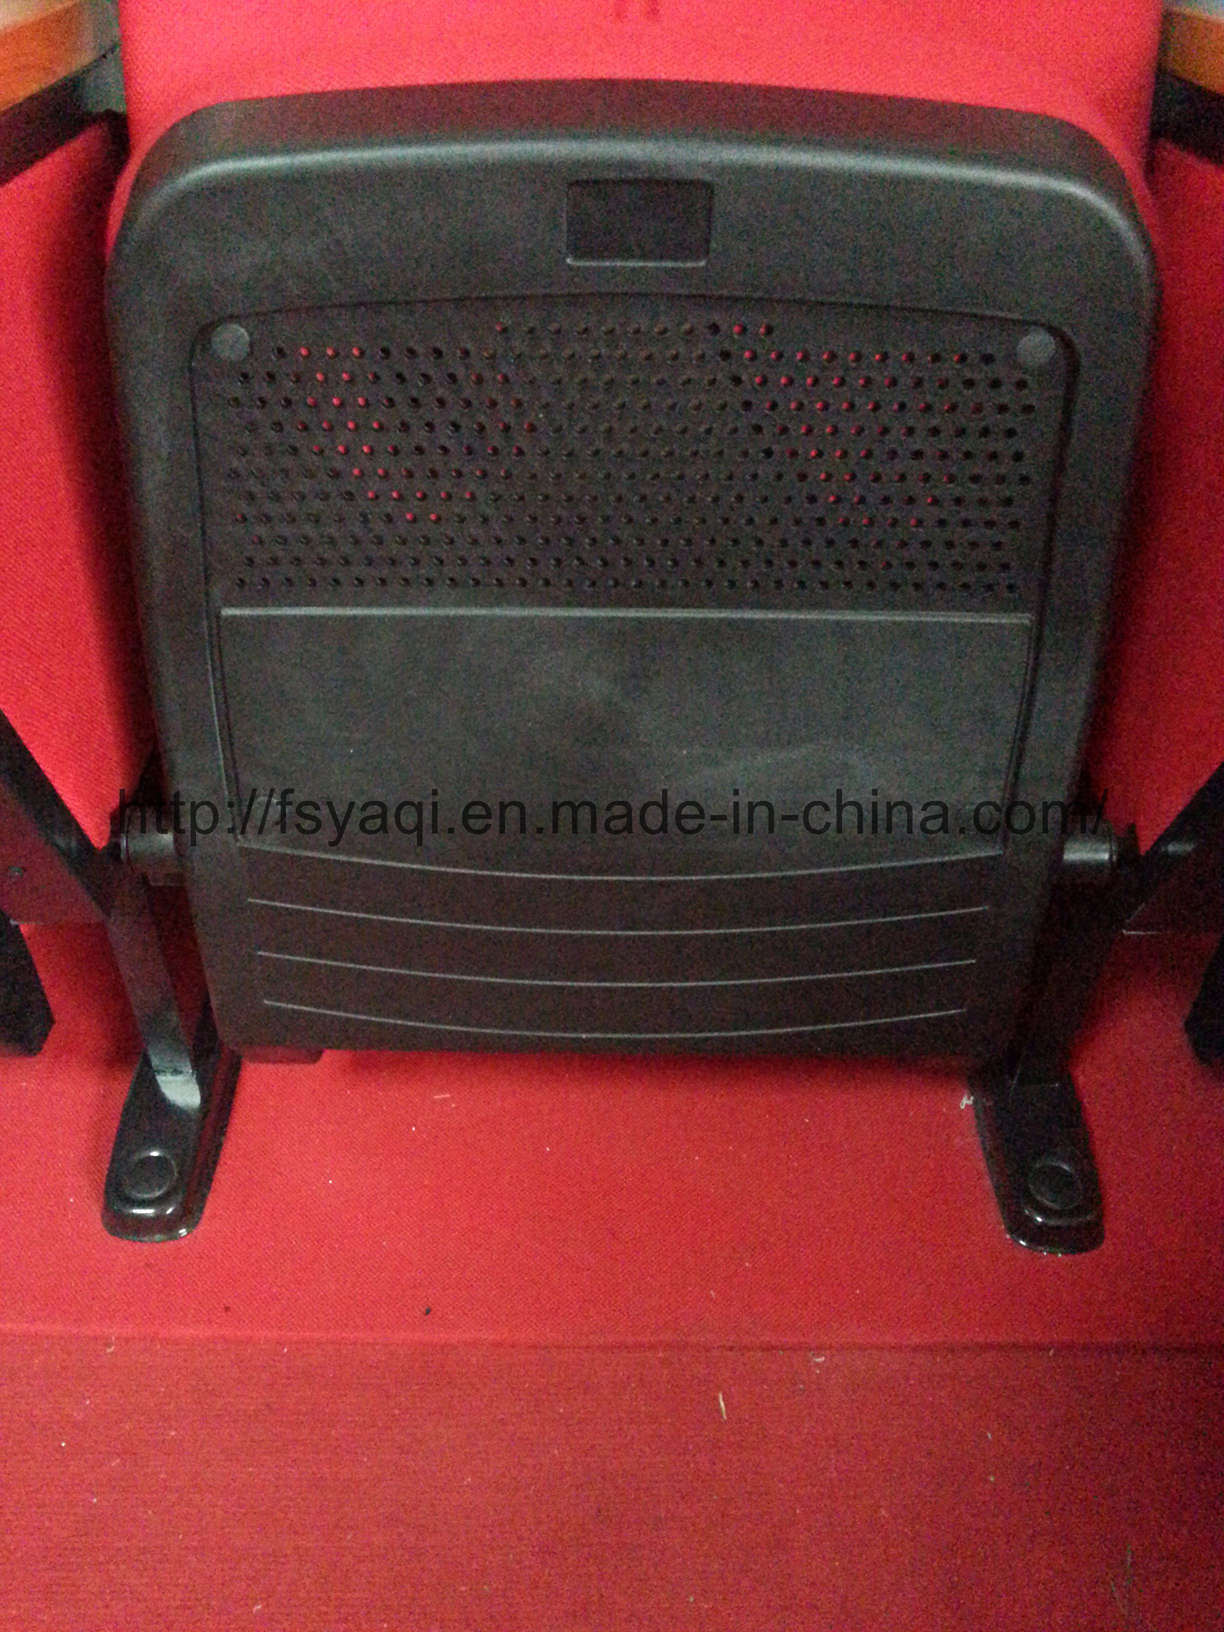 Hotsale Competitve Foldable Metal Theater Chair Auditorium Chair Cheap Price Upholstery Small Size Church Chair (YA-16)